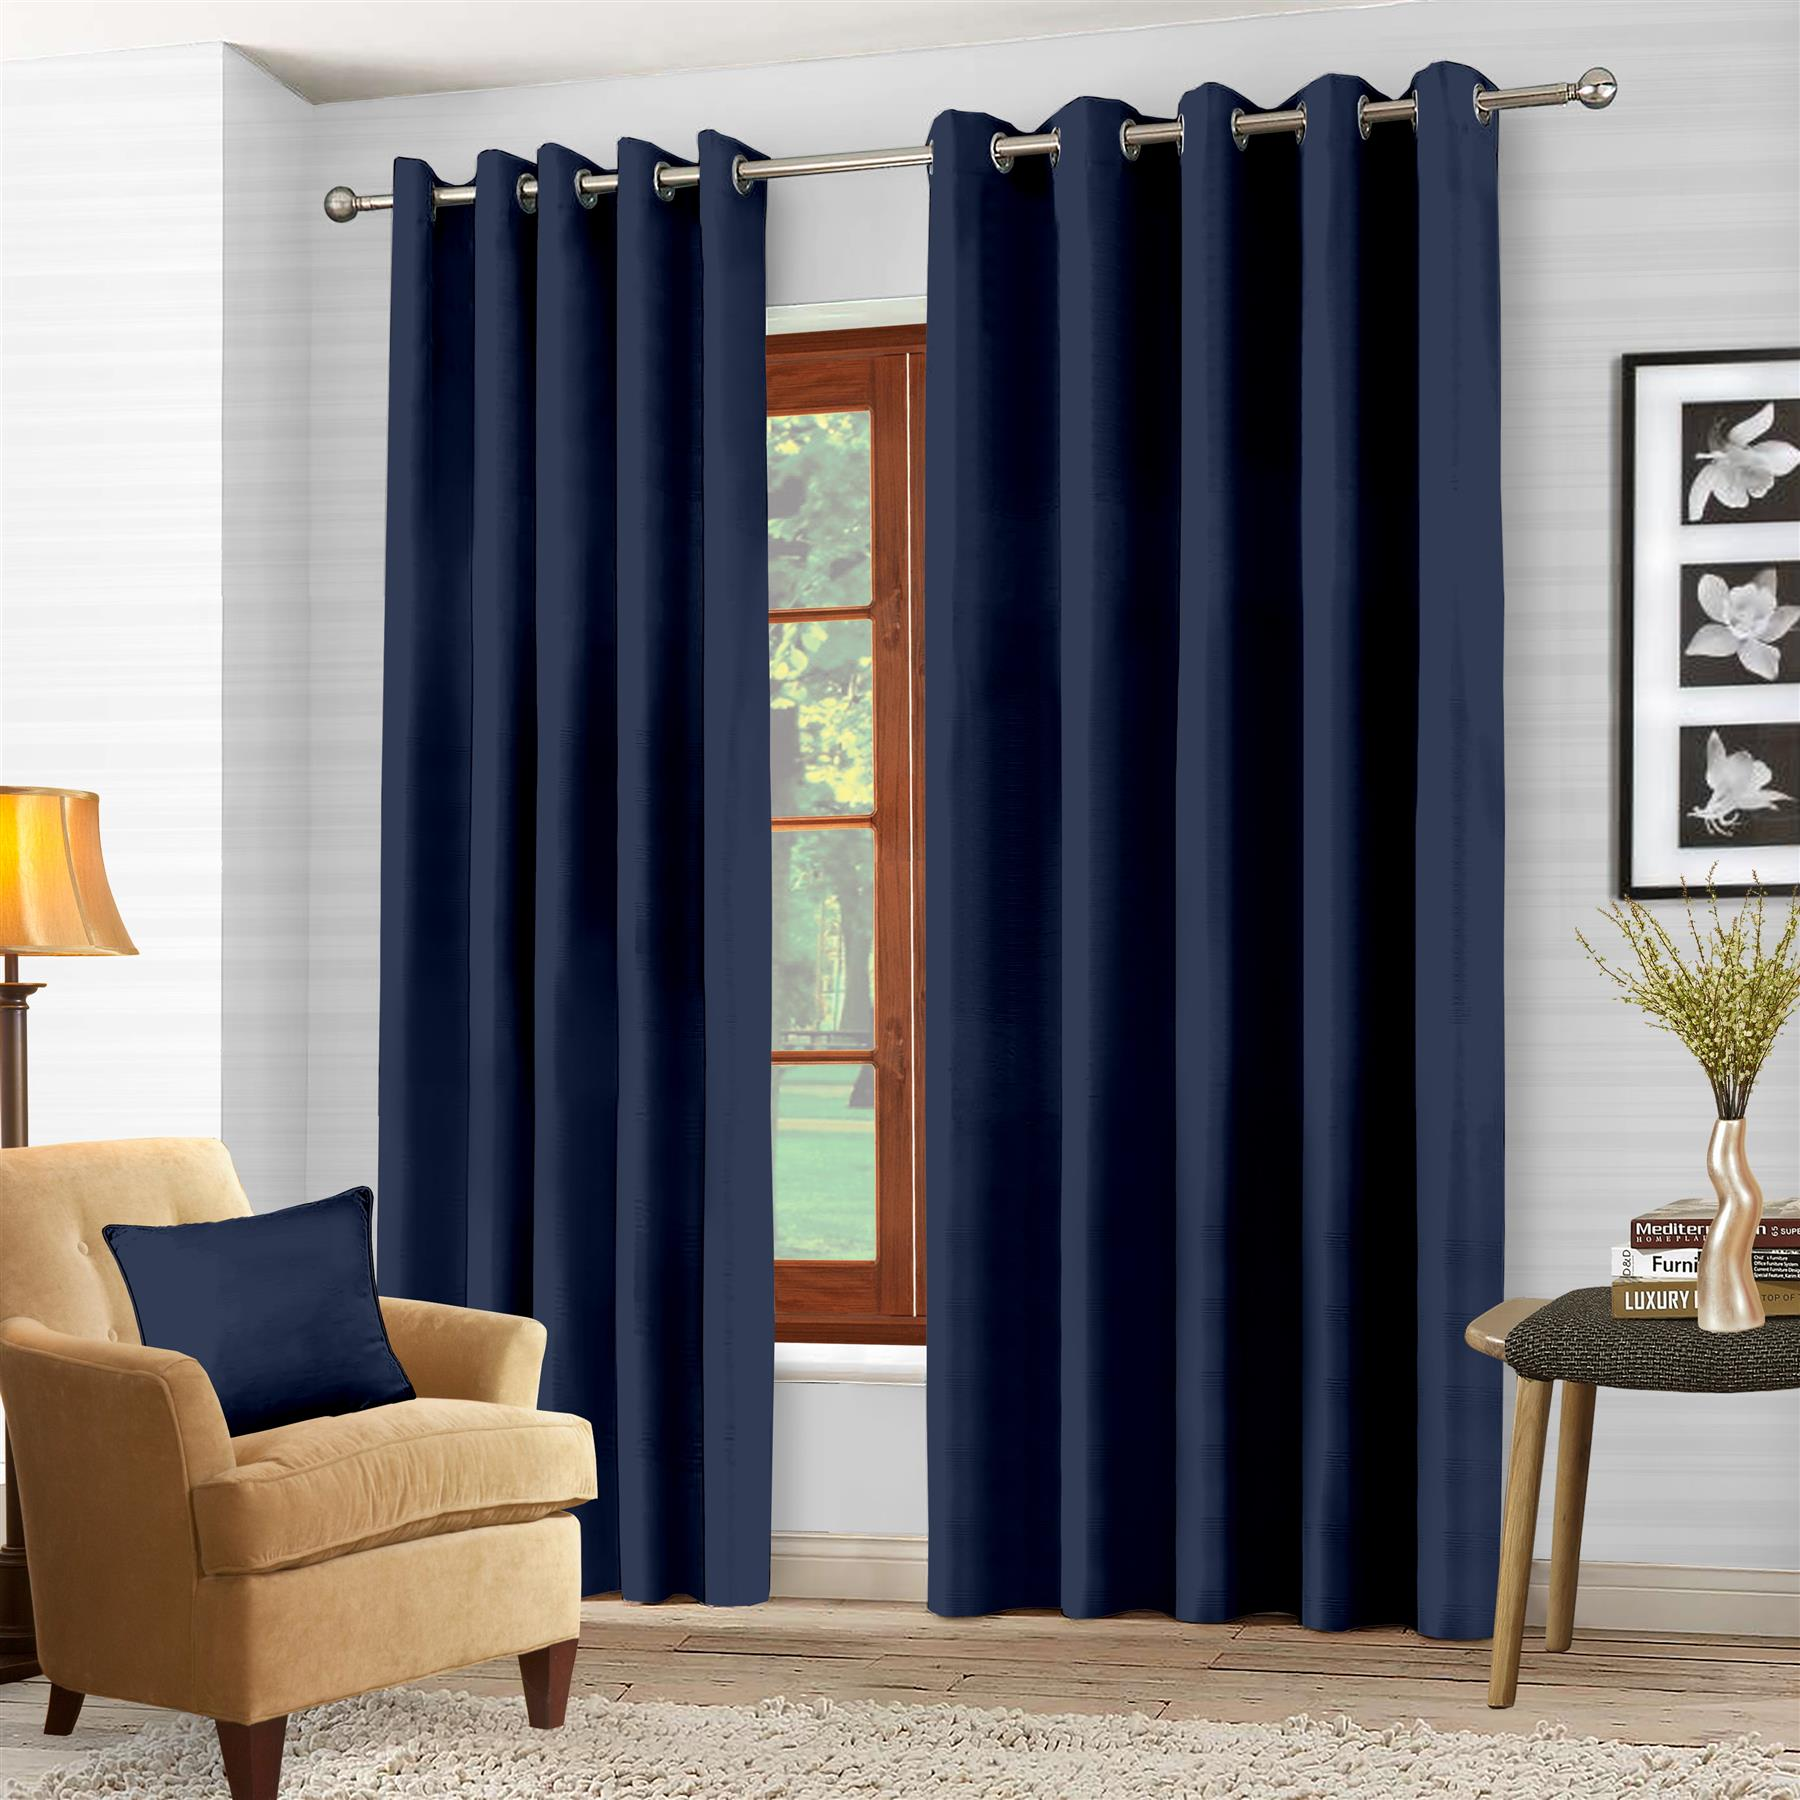 Luxury-Thermal-Blackout-Eyelet-Ring-Top-Curtains-Pair-with-tie-backs thumbnail 29